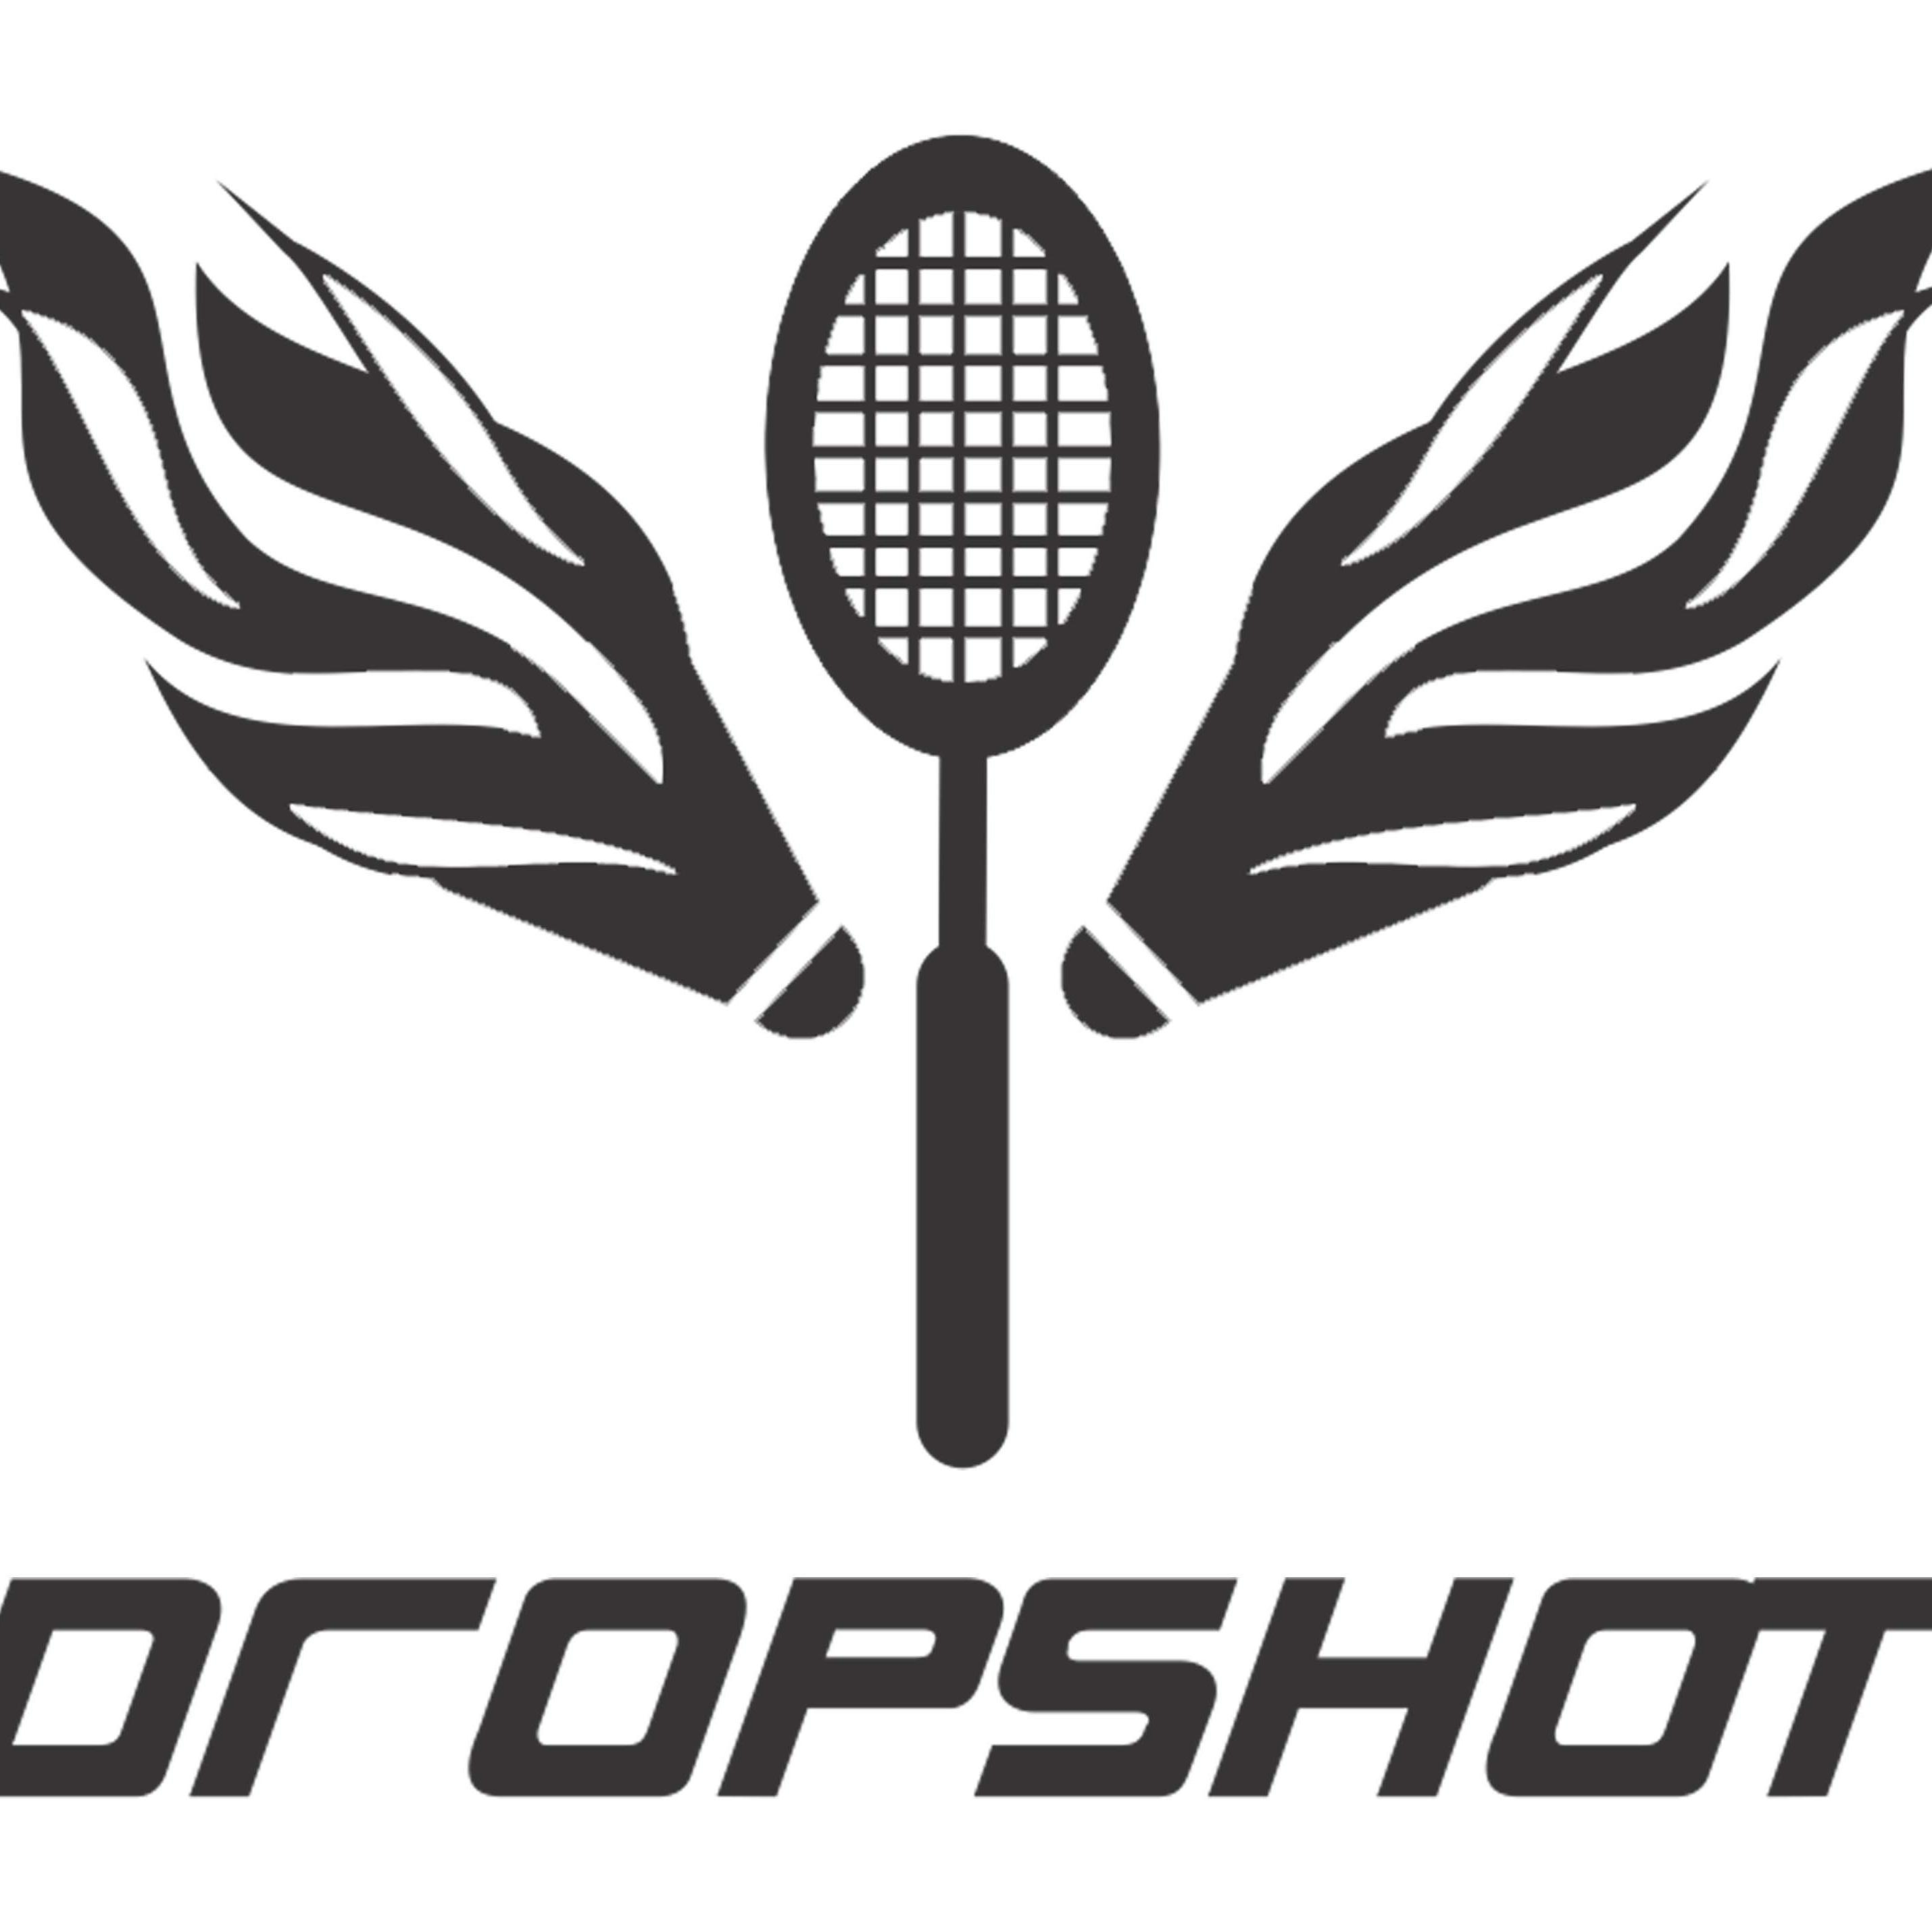 Design t shirt badminton - Dropshot